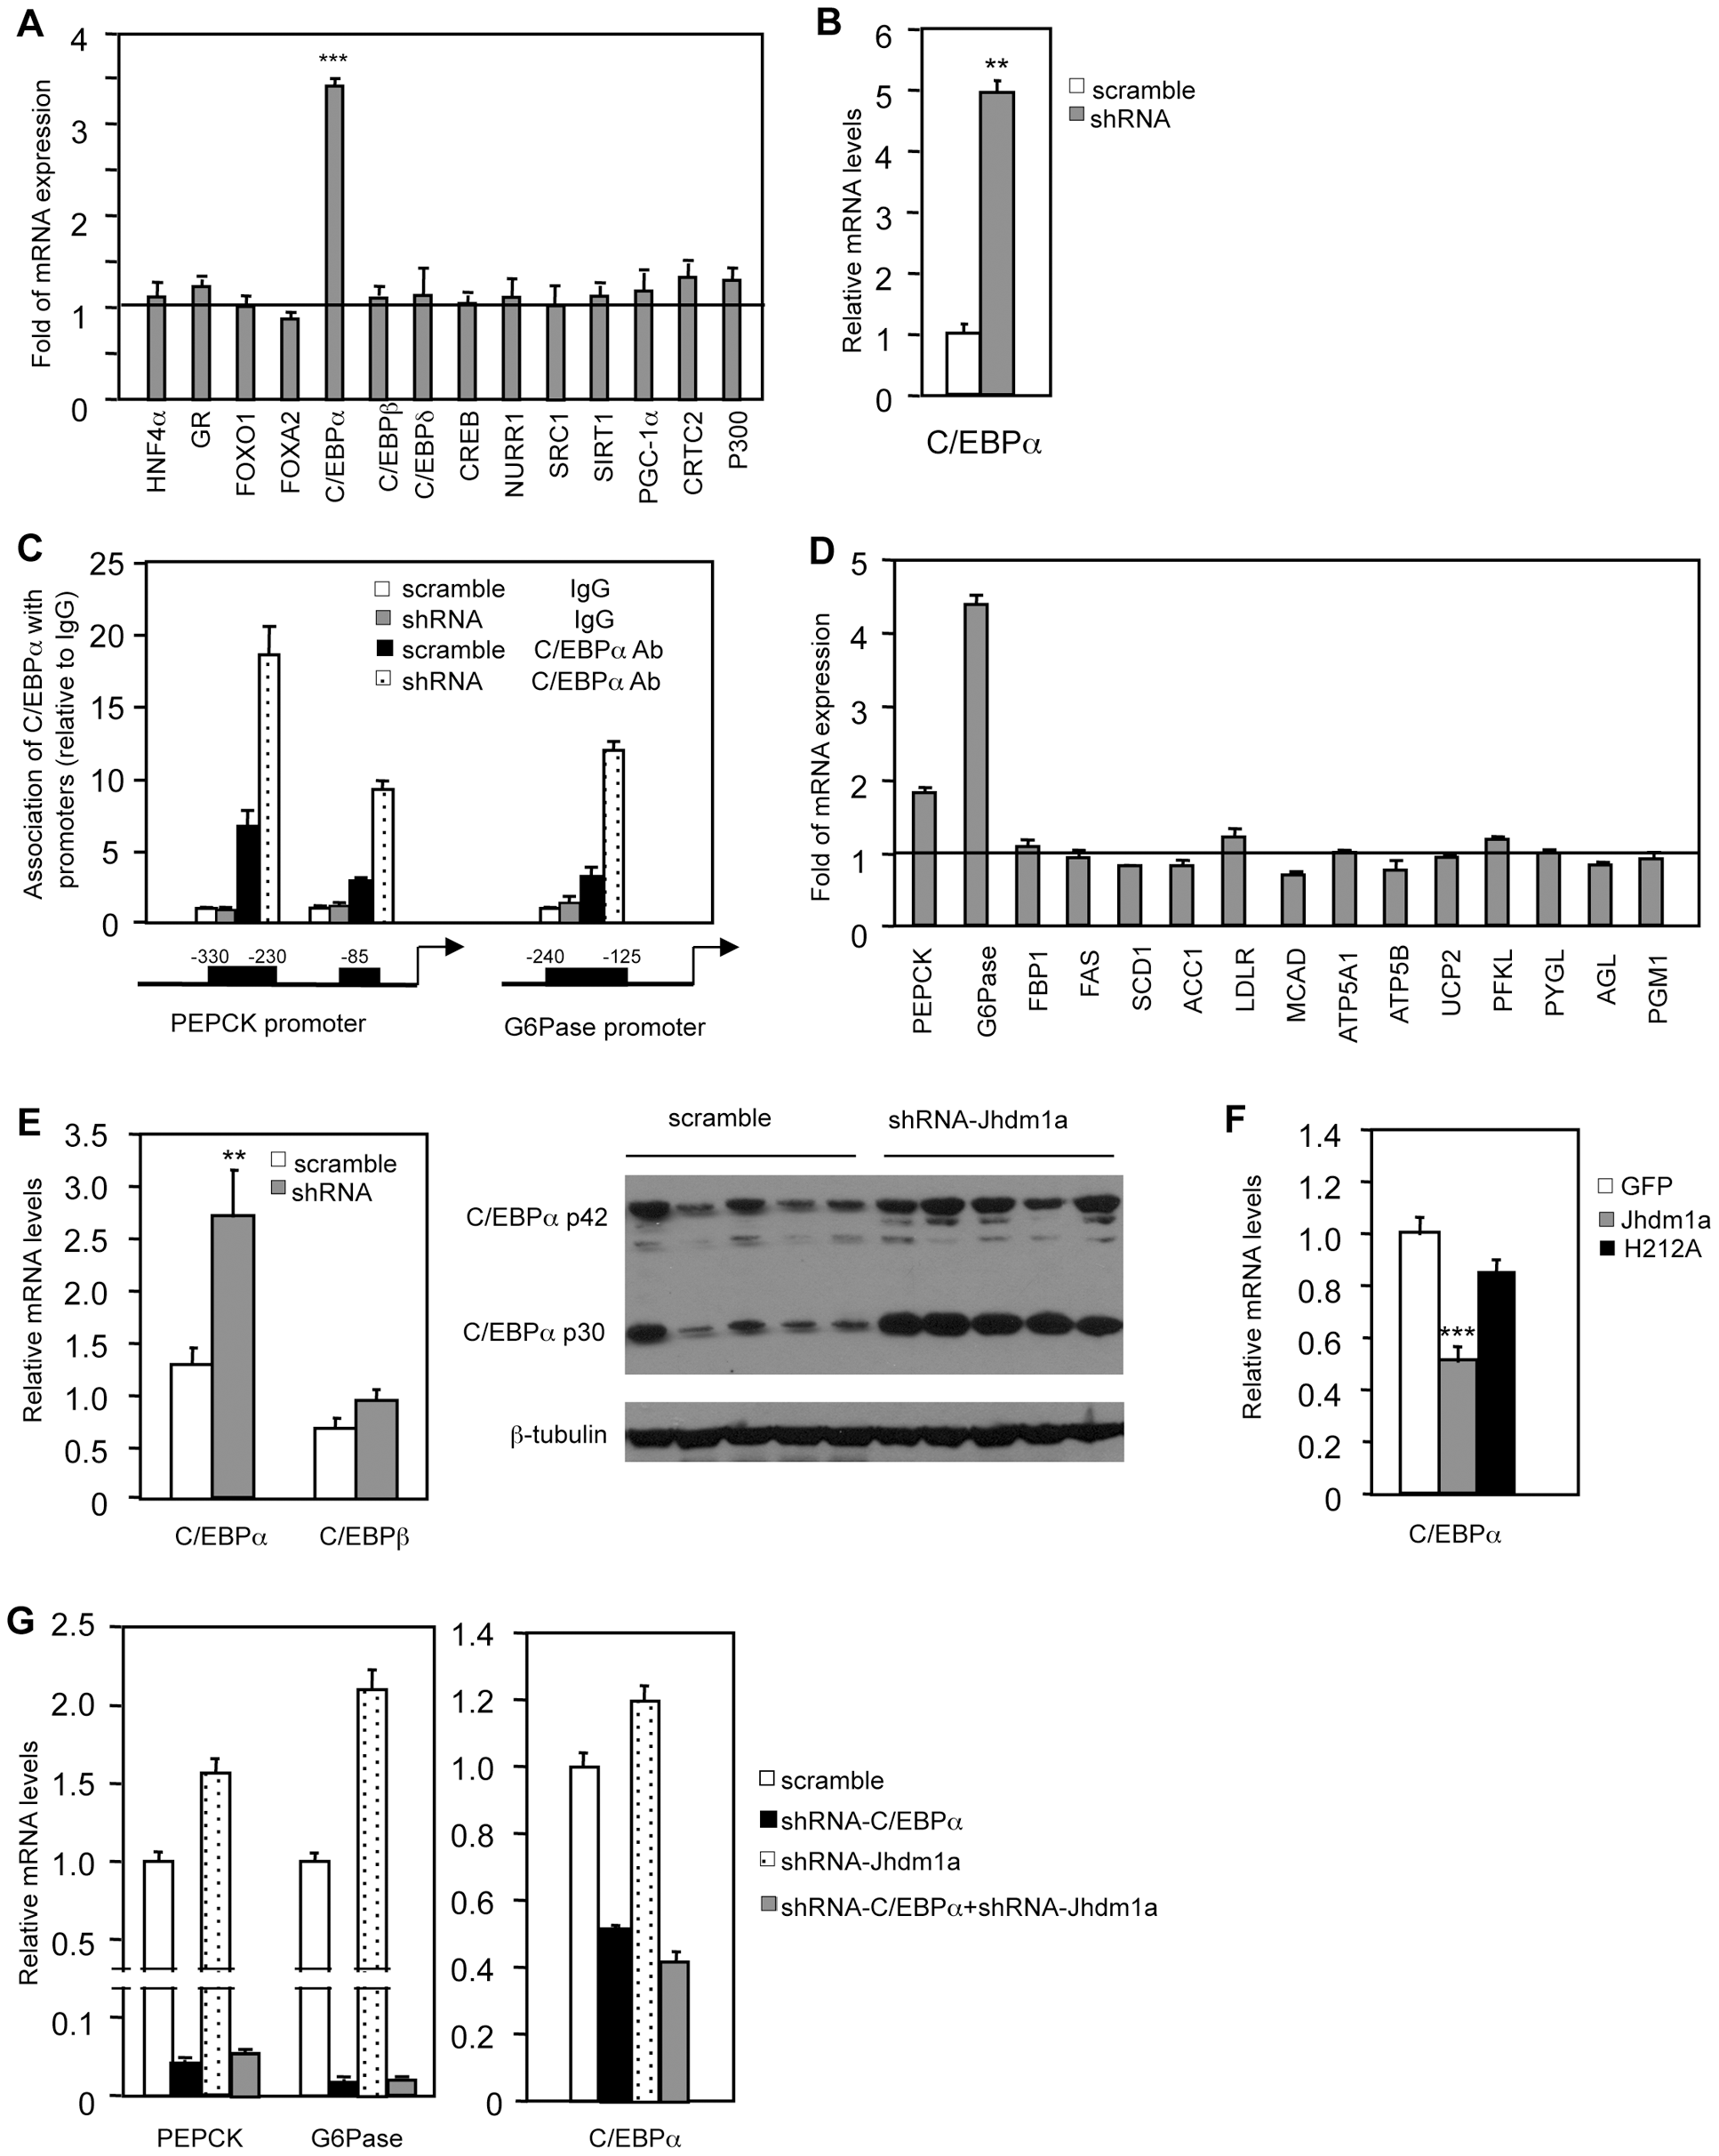 Jhdm1a regulates the expression of C/EBPα, thereby indirectly modulating gluconeogenic gene expression.